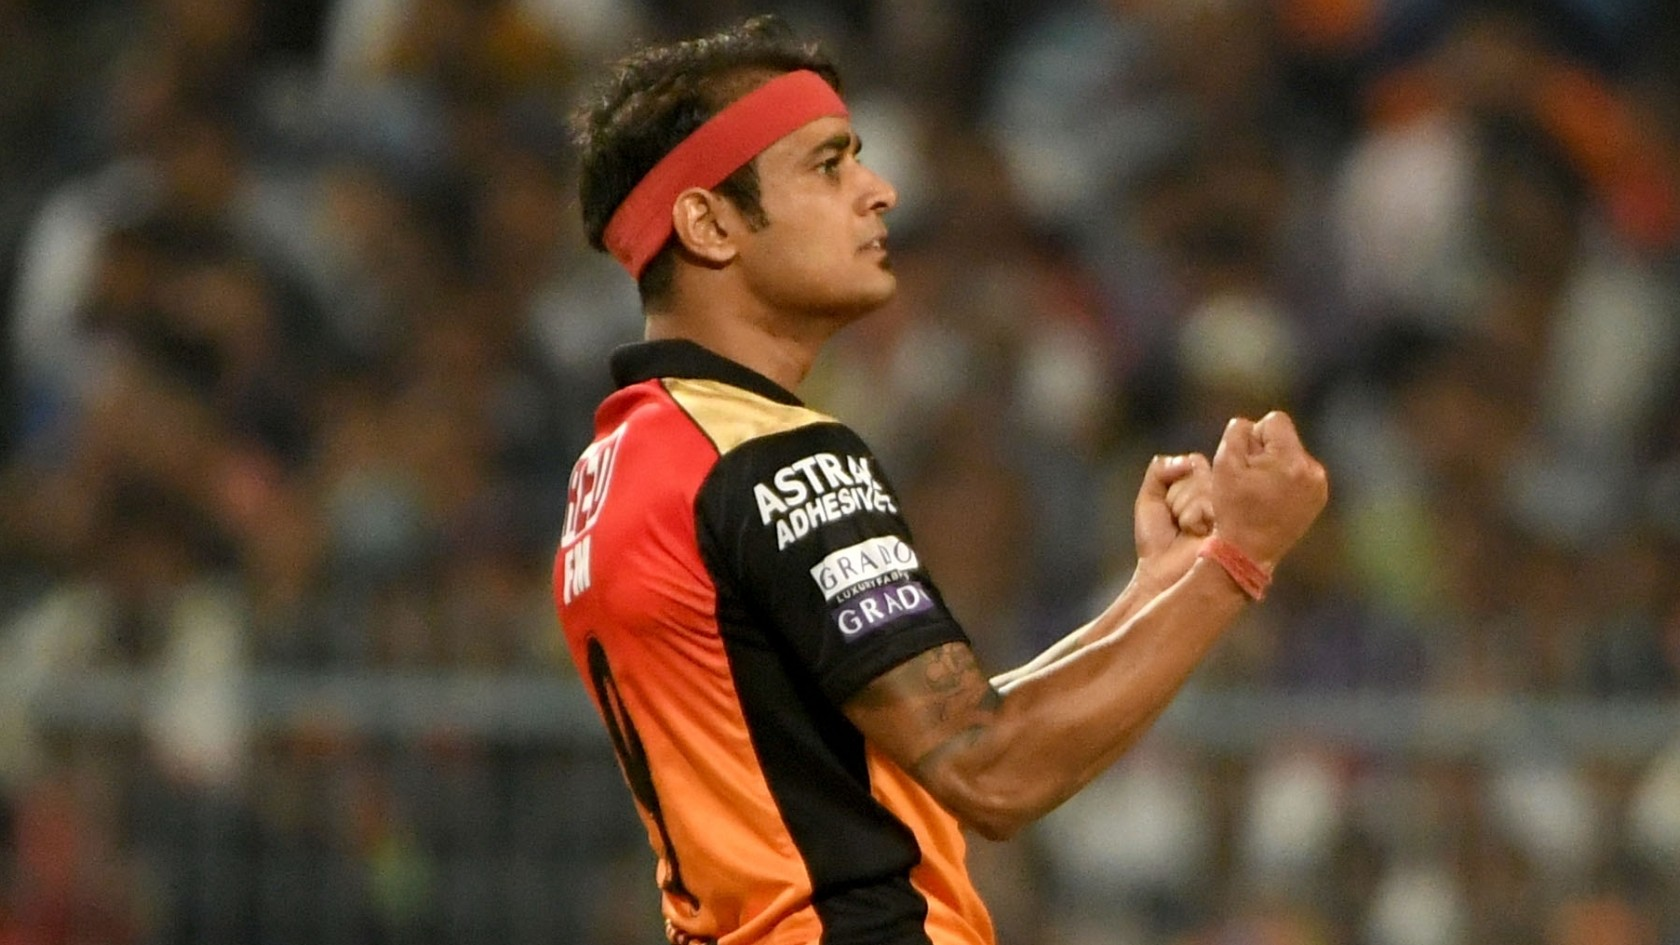 IPL 2019: My job is to execute plans no matter who is facing, says SRH's Siddharth Kaul